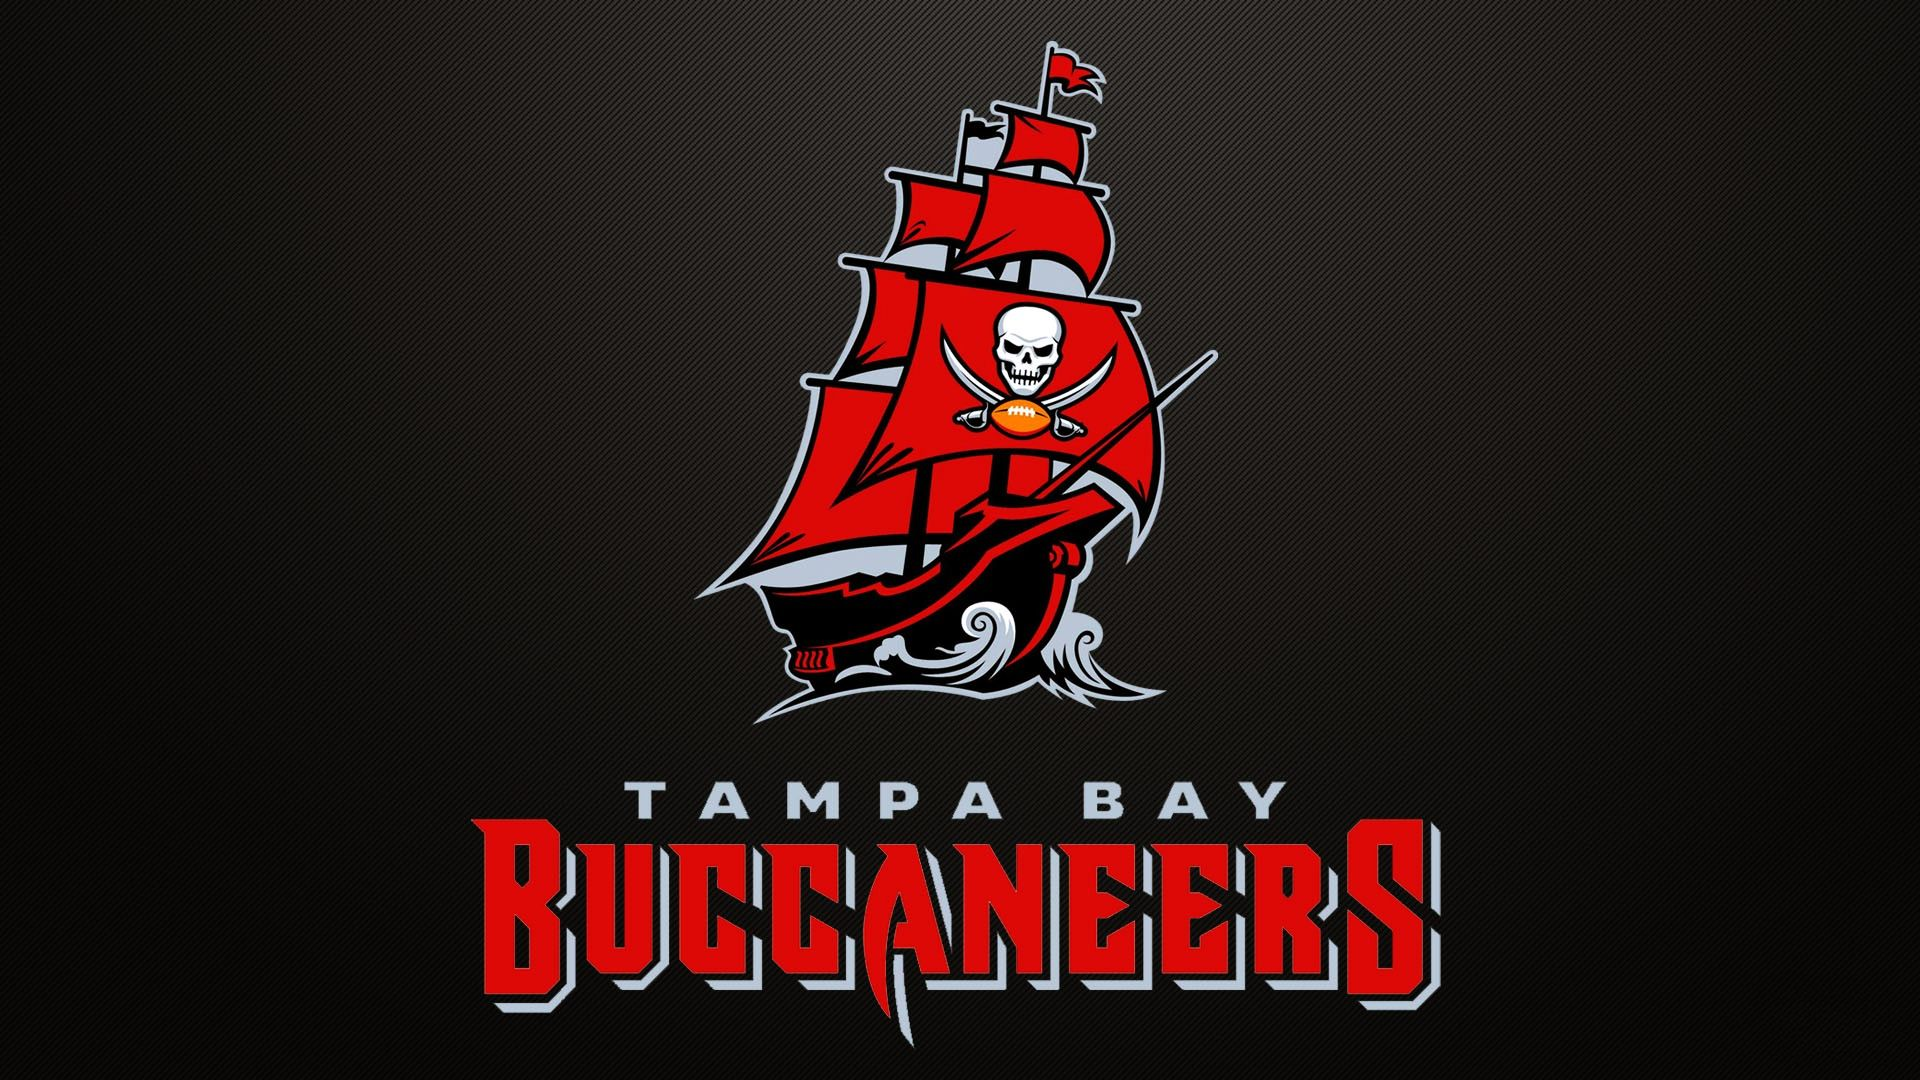 Tampa Bay Buccaneers Wallpaper 22682